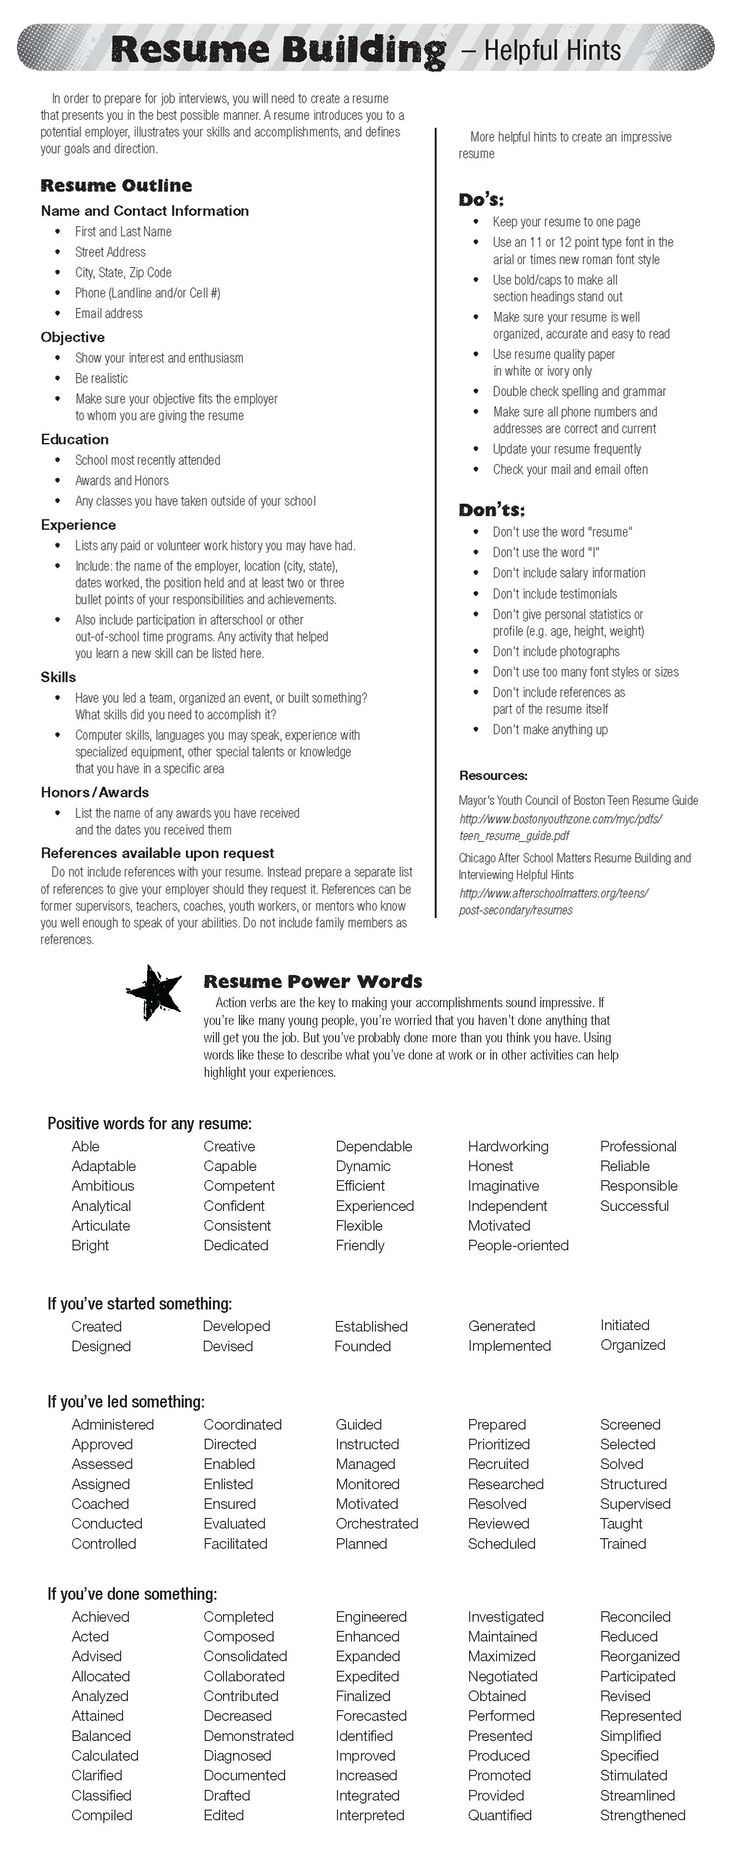 Opposenewapstandardsus  Terrific  Ideas About Resume On Pinterest  Cv Format Resume  With Fetching Check Out Todays Resume Building Tips Resume Resumepowerwords With Enchanting Email Cover Letter And Resume Also Office Manager Skills Resume In Addition Resume Social Media And Good Example Resume As Well As Anesthesiologist Resume Additionally Security Engineer Resume From Pinterestcom With Opposenewapstandardsus  Fetching  Ideas About Resume On Pinterest  Cv Format Resume  With Enchanting Check Out Todays Resume Building Tips Resume Resumepowerwords And Terrific Email Cover Letter And Resume Also Office Manager Skills Resume In Addition Resume Social Media From Pinterestcom